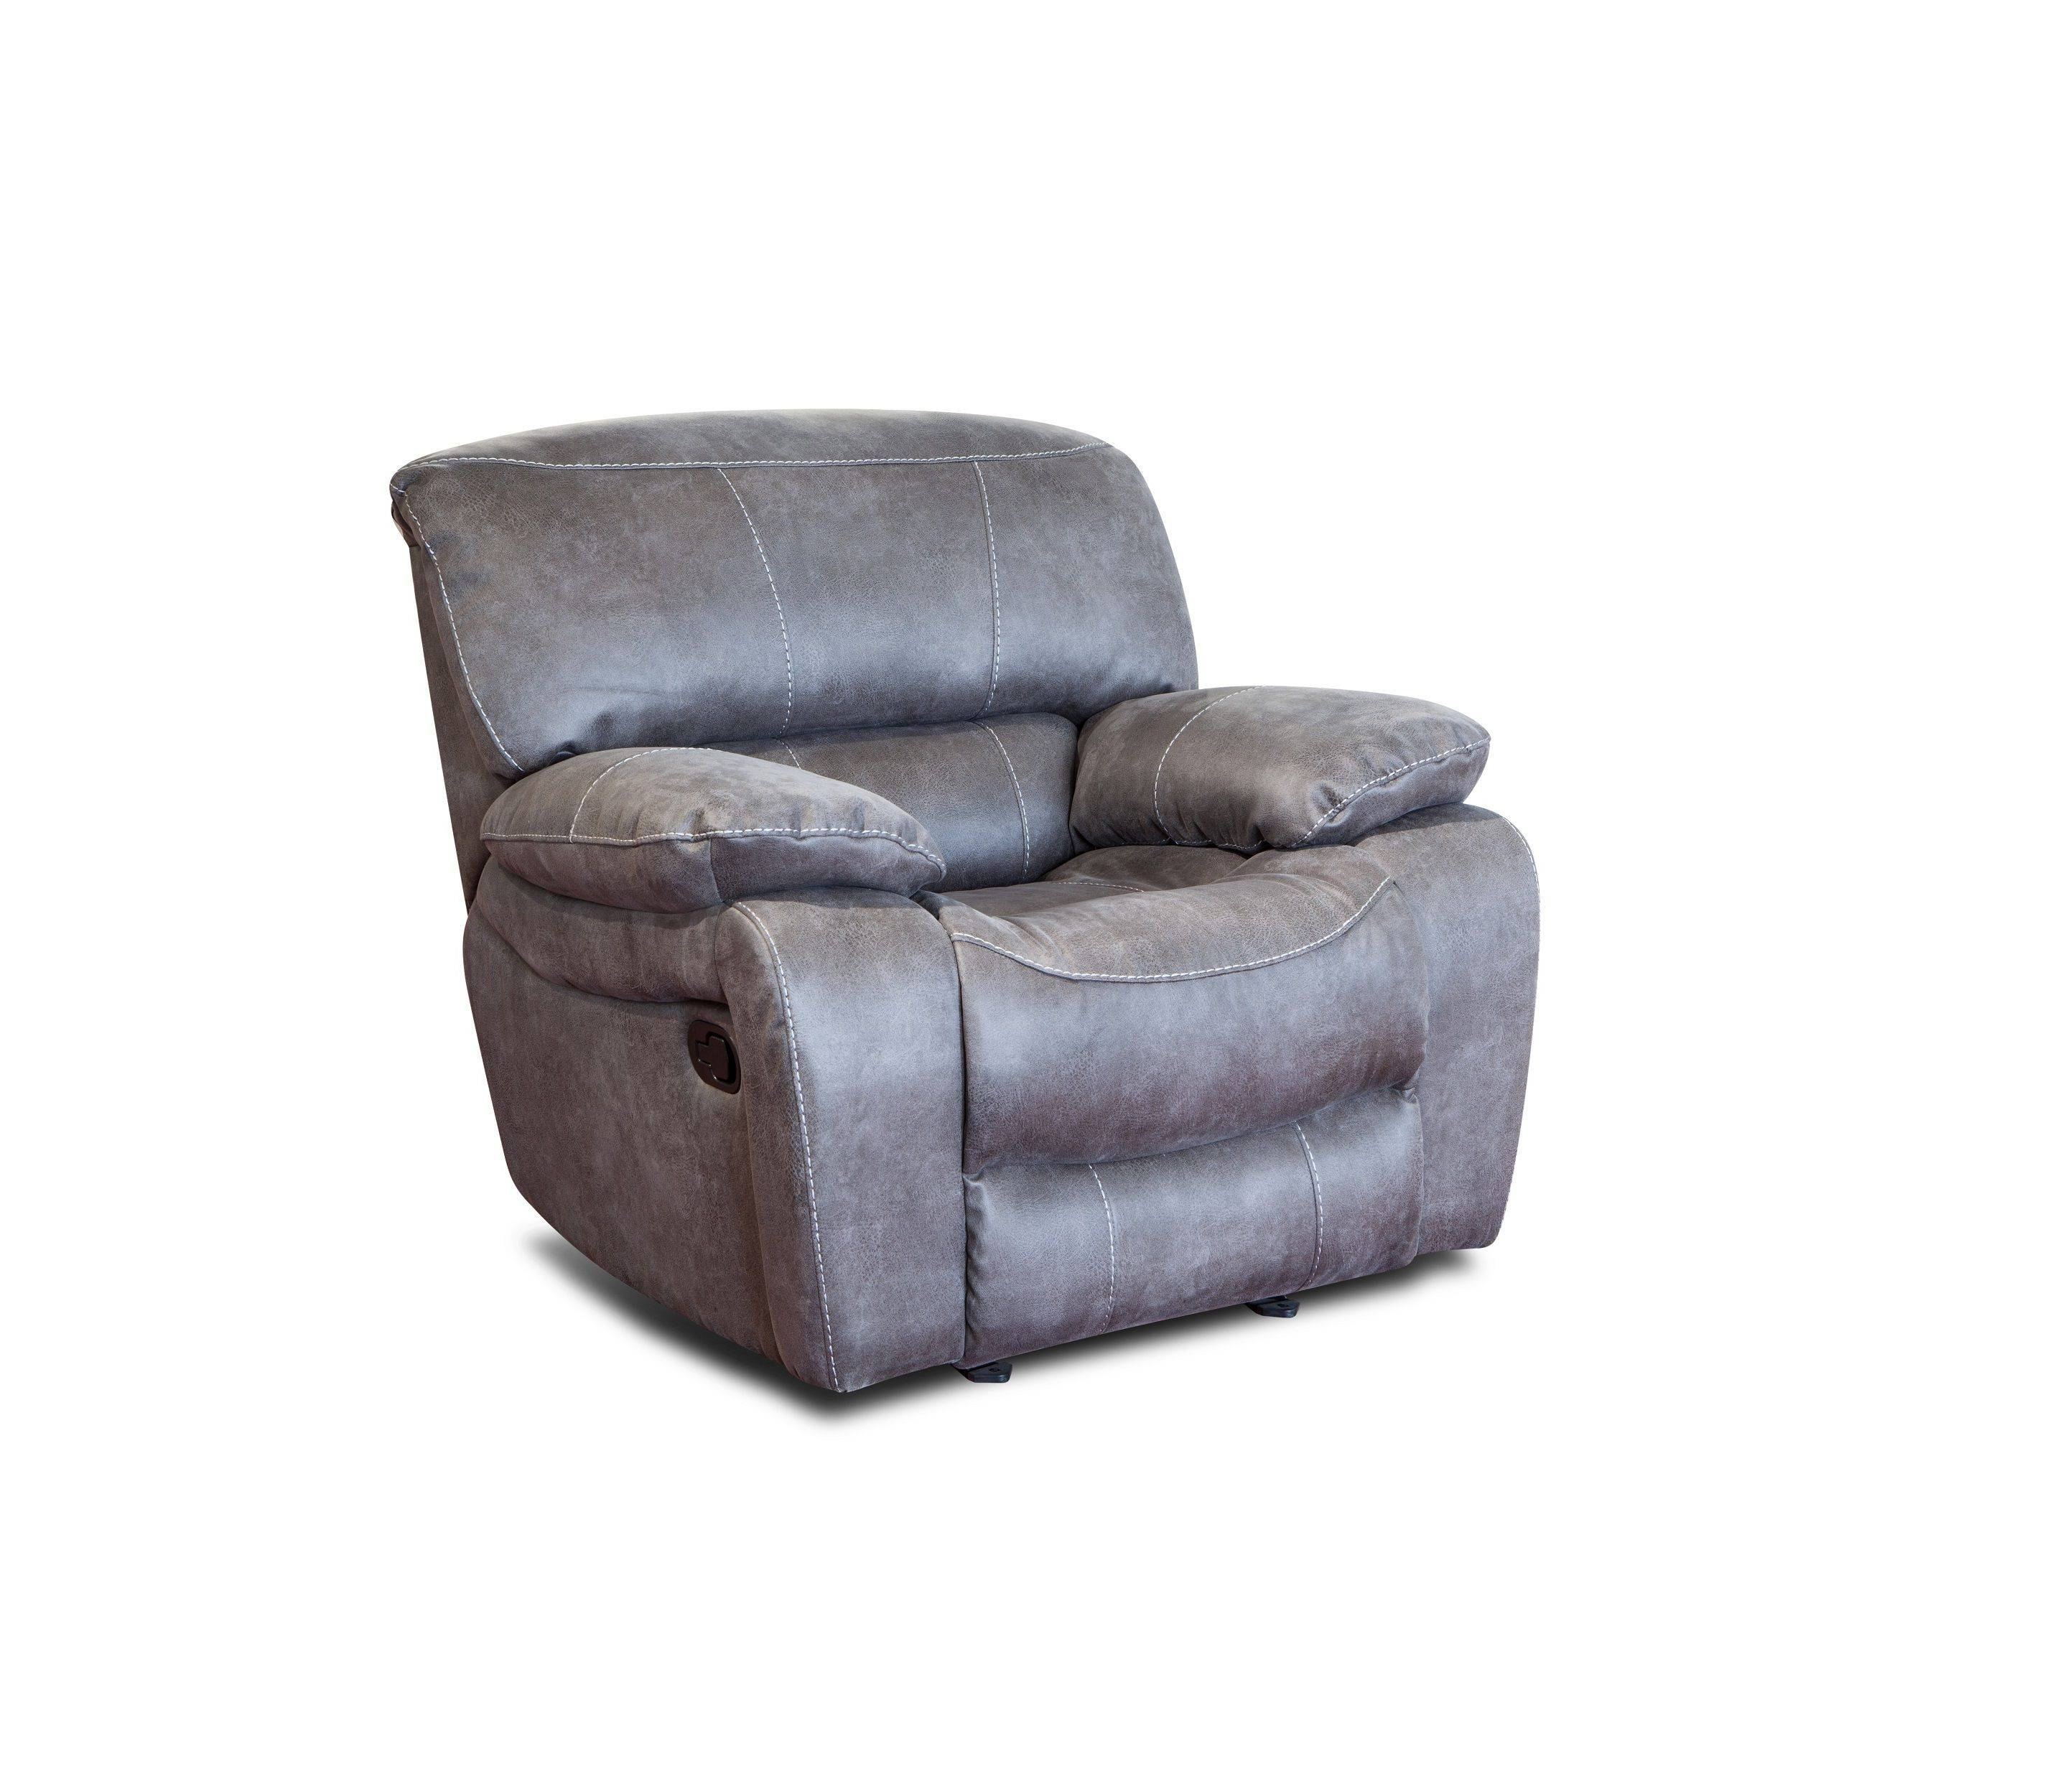 One seat living room cinema modern electric recliner chair